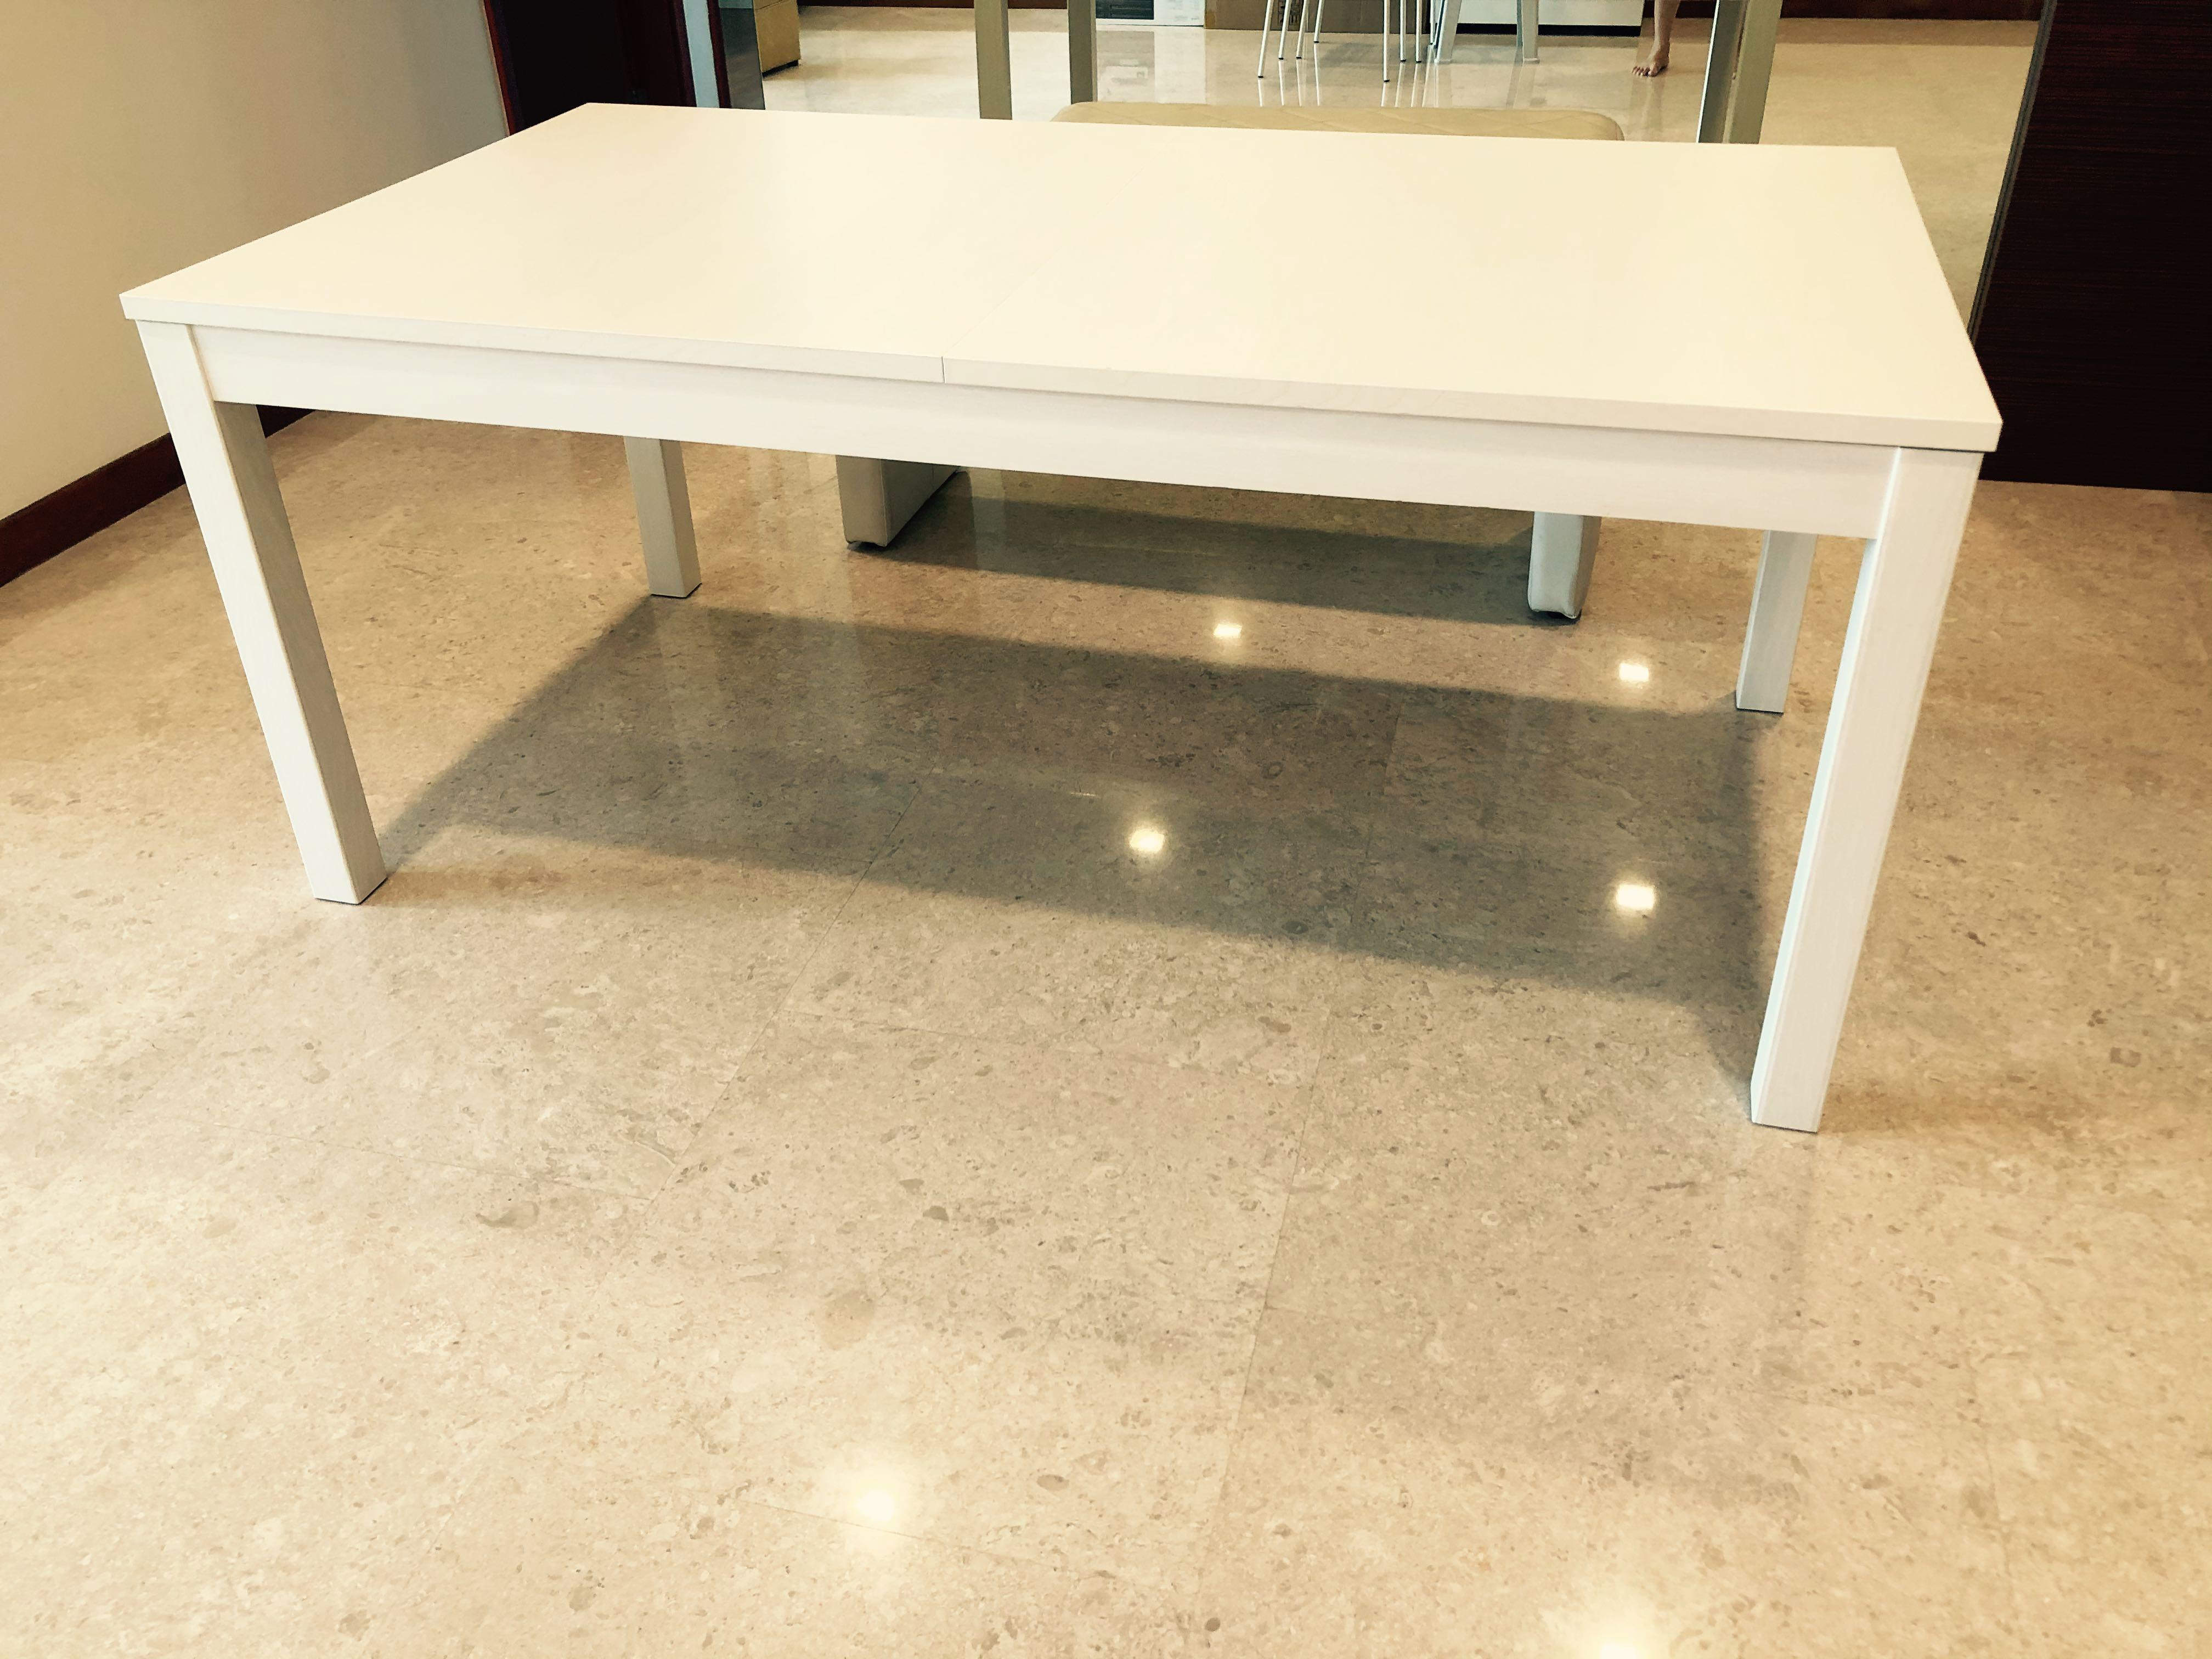 Ikea Bjursta Extendable Dining Table 6 10 Seater Furniture Tables Chairs On Carousell